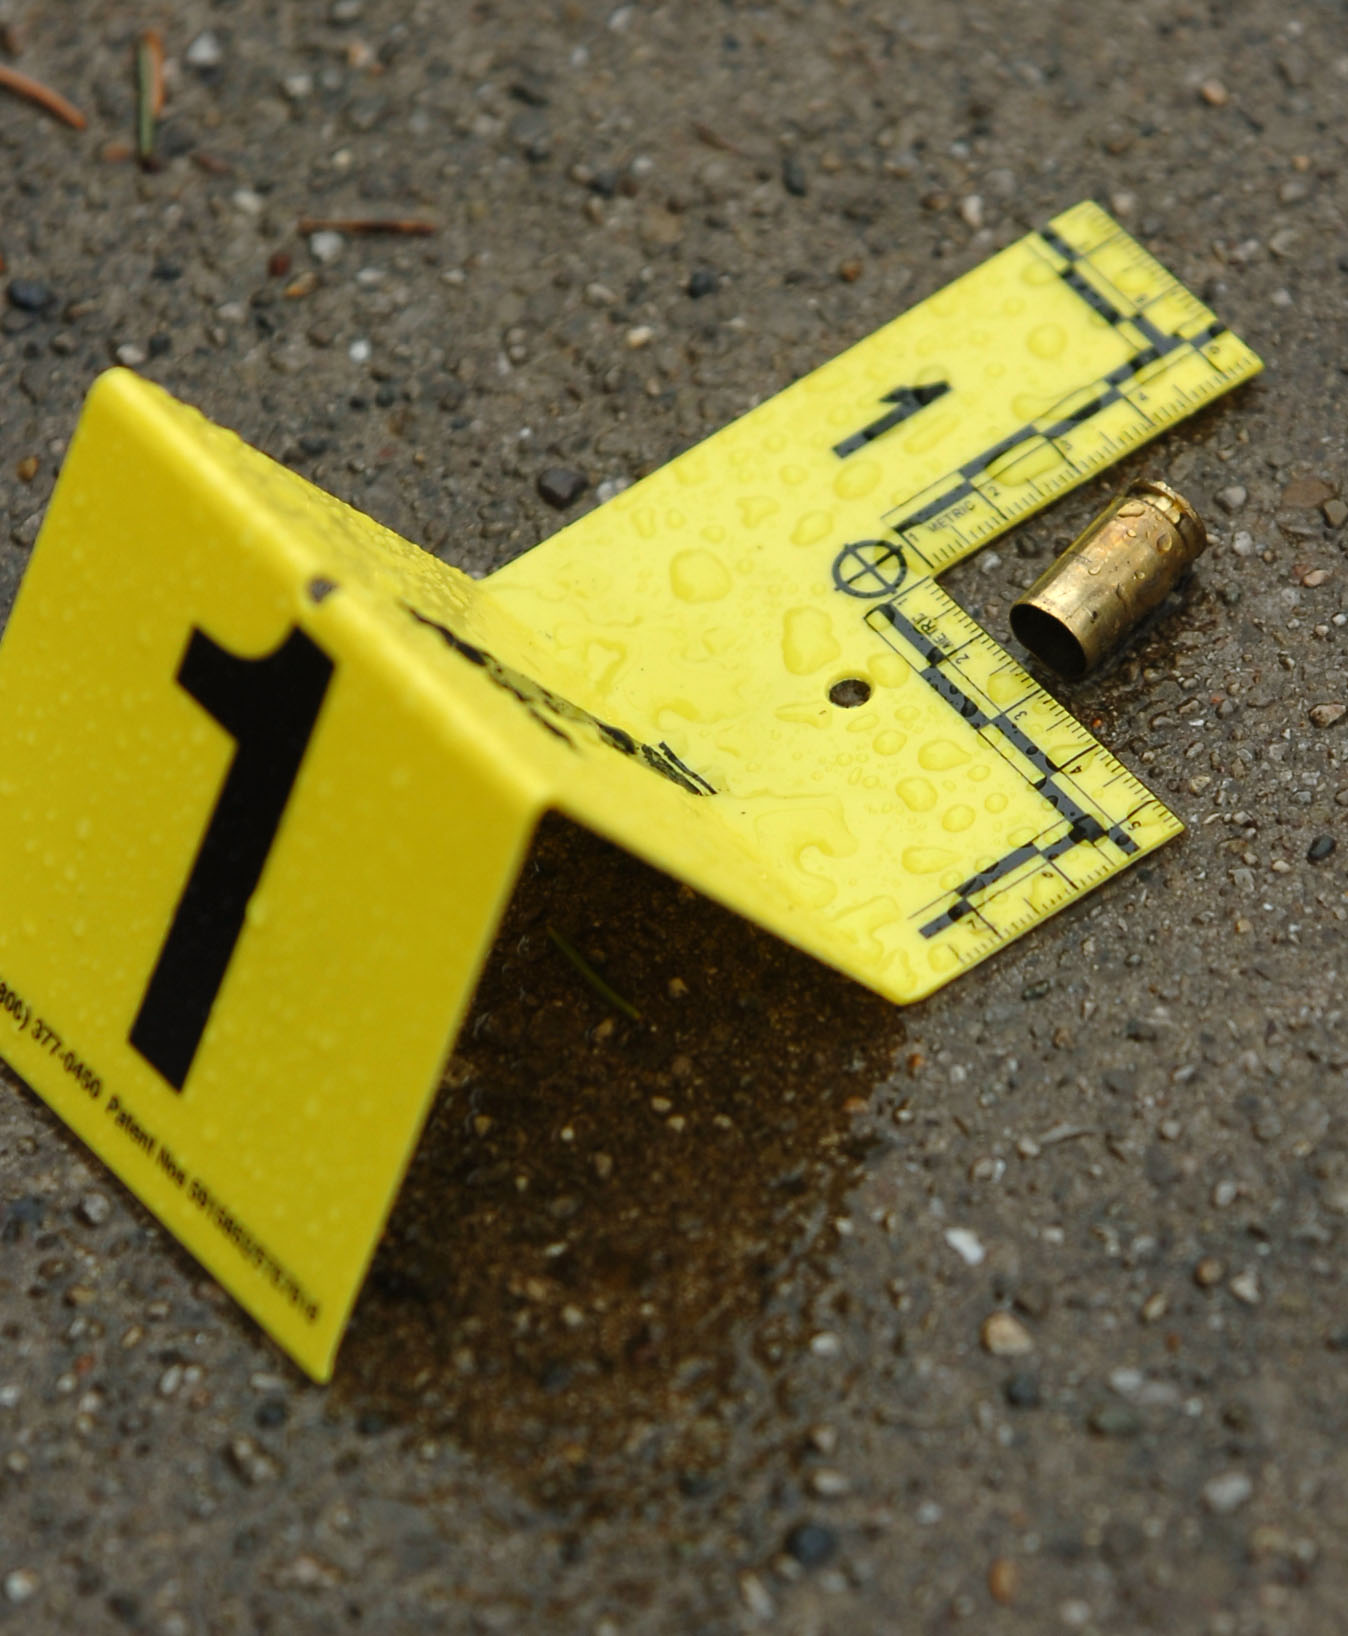 A man was shot to death May 31, 2020, in the 900 block of East 93rd Street in Burnside.